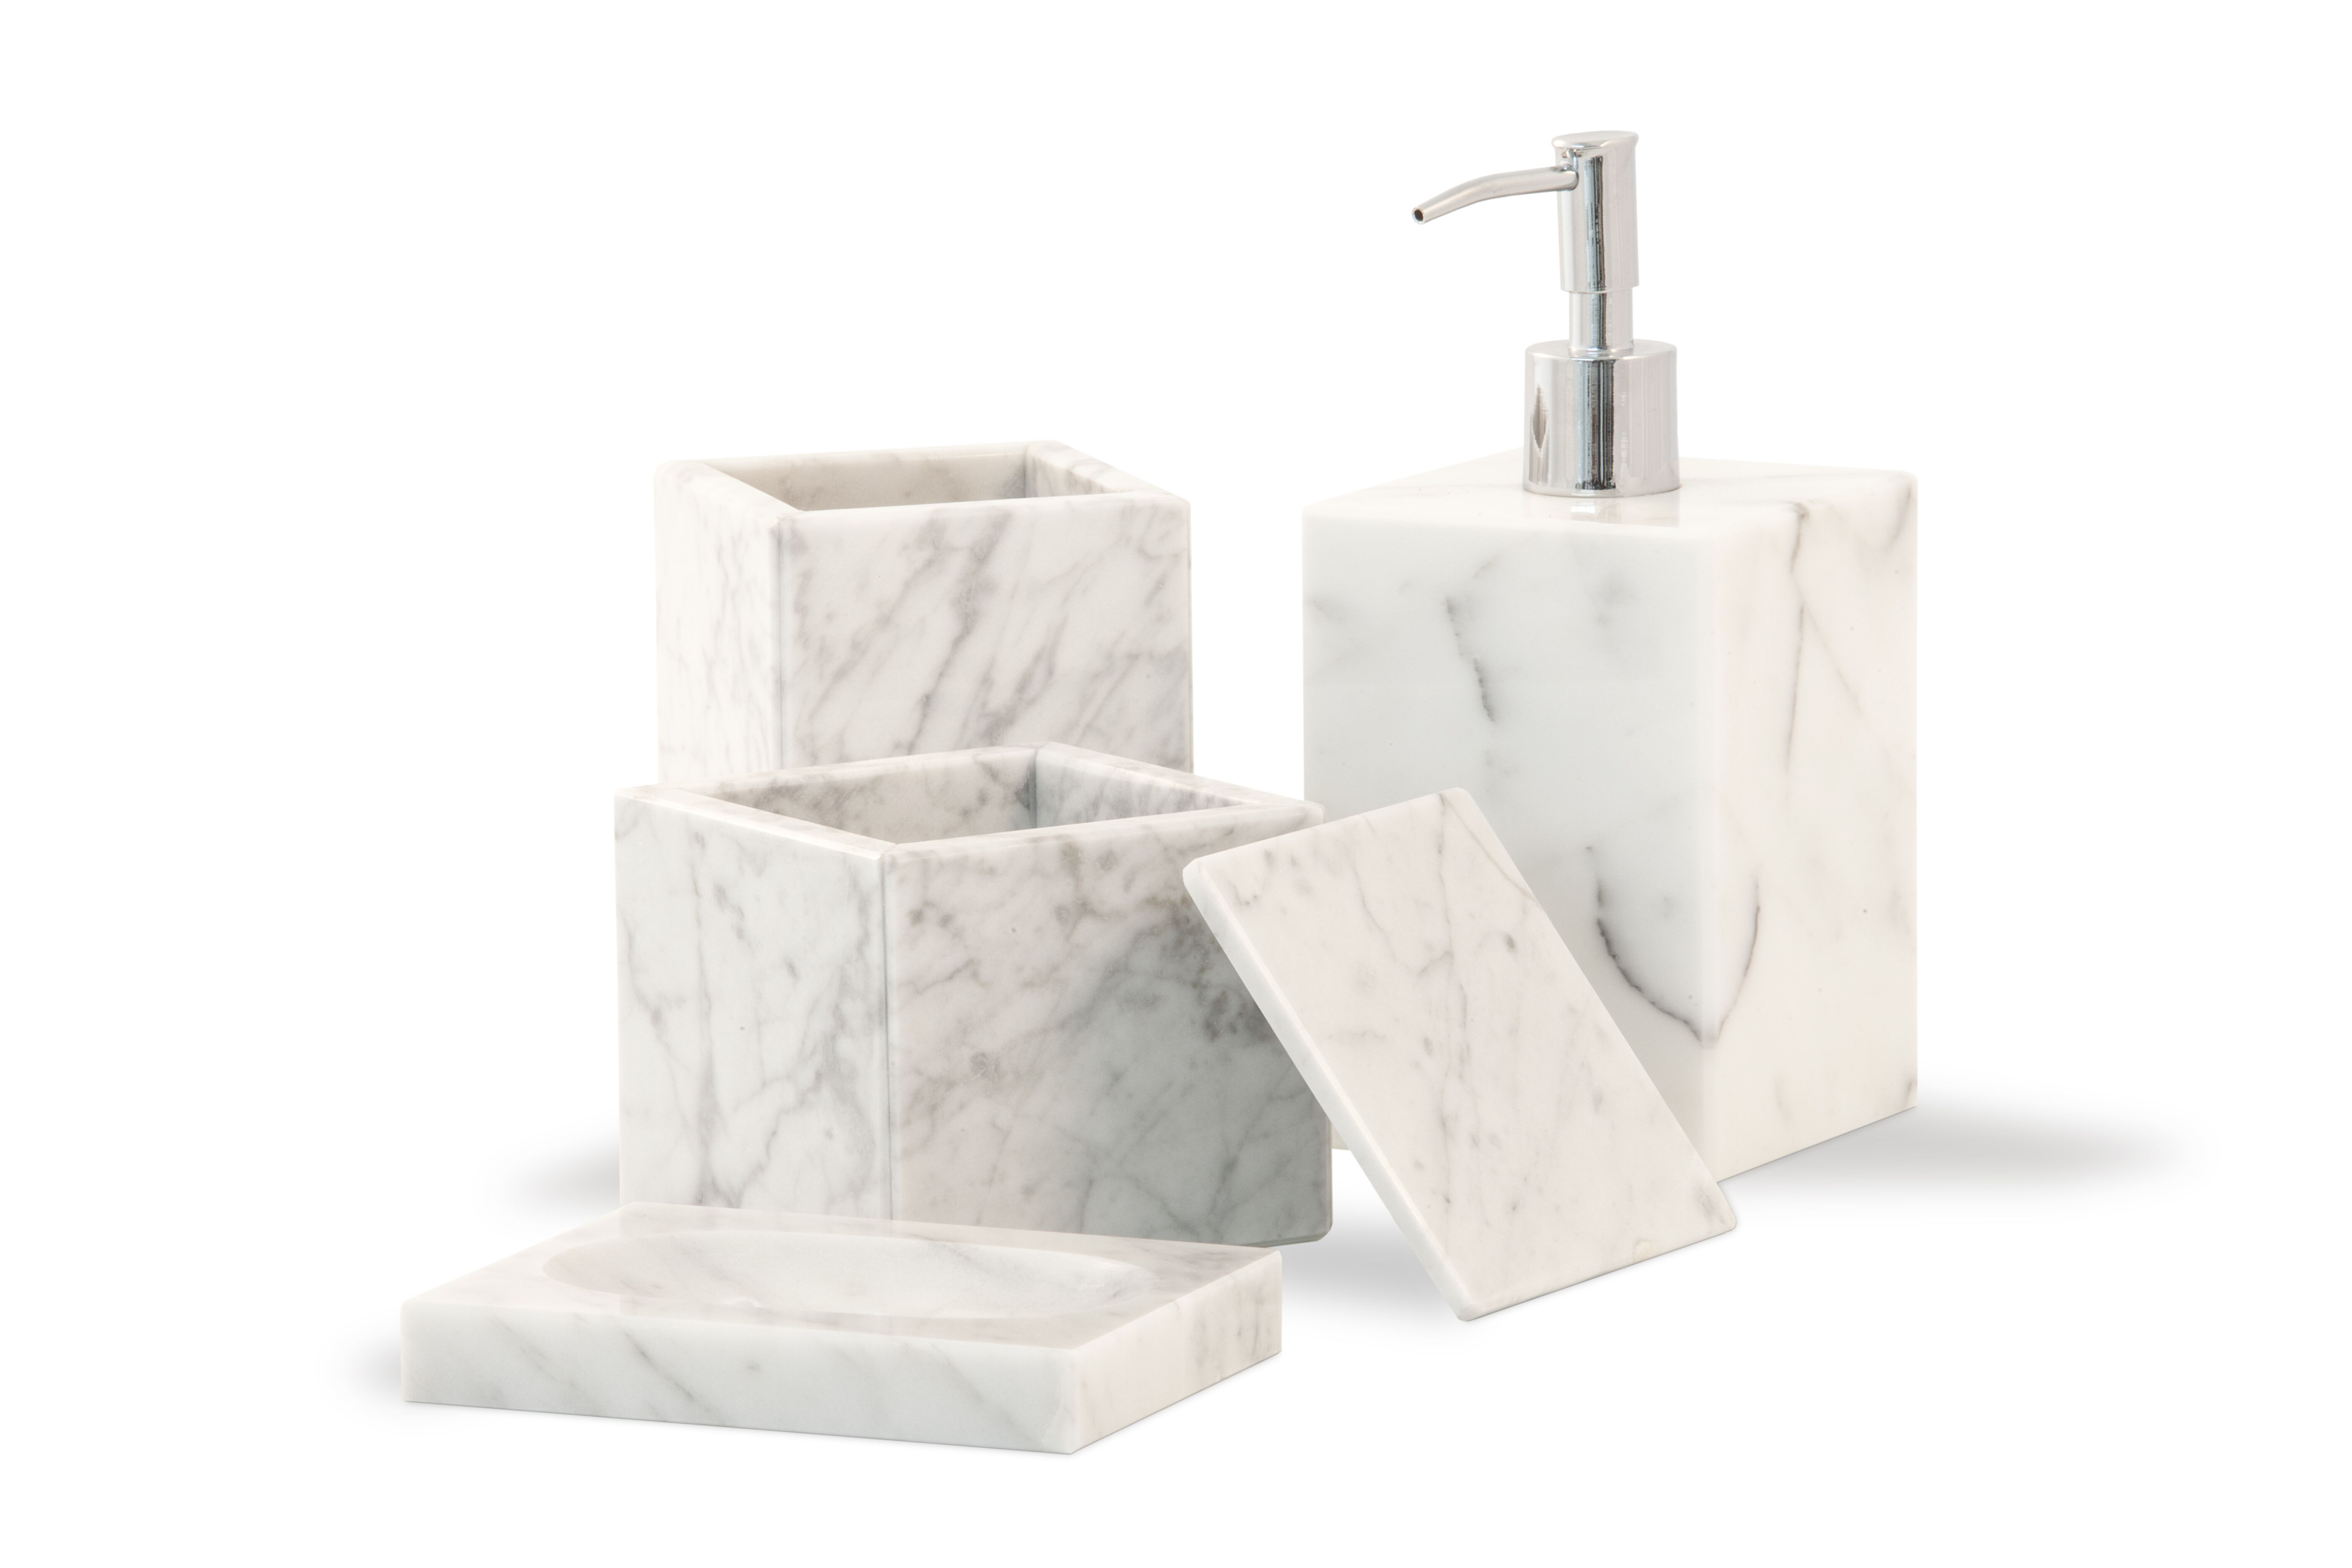 Bathroom Dispenser Set White Carrara Marble Bathroom Set Soap Dispenser Soap Dish